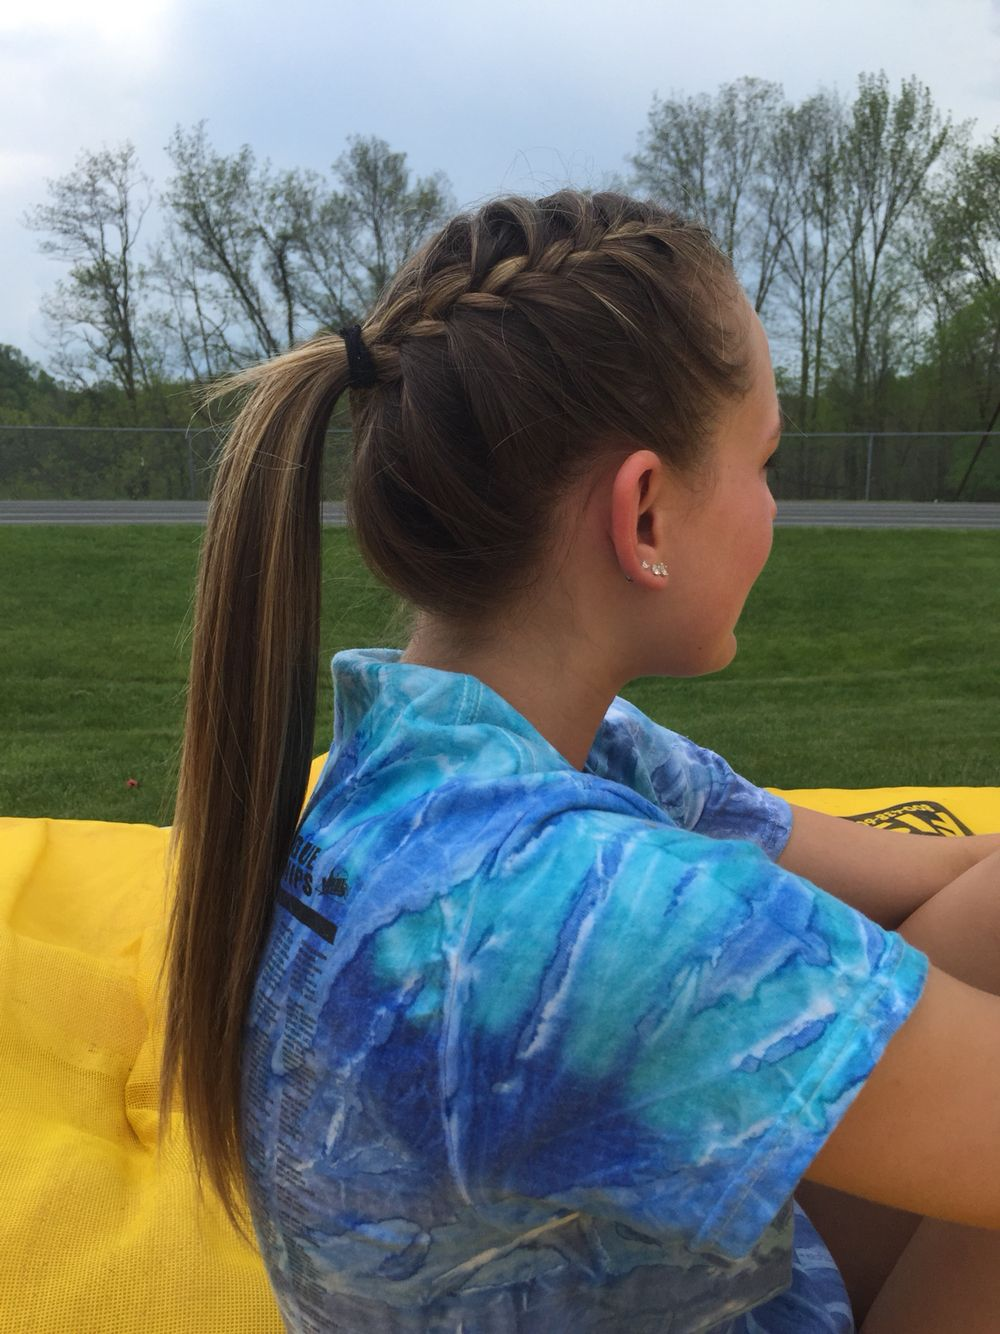 Track Runner Hair Hair Styles Sporty Hairstyles Volleyball Hairstyles